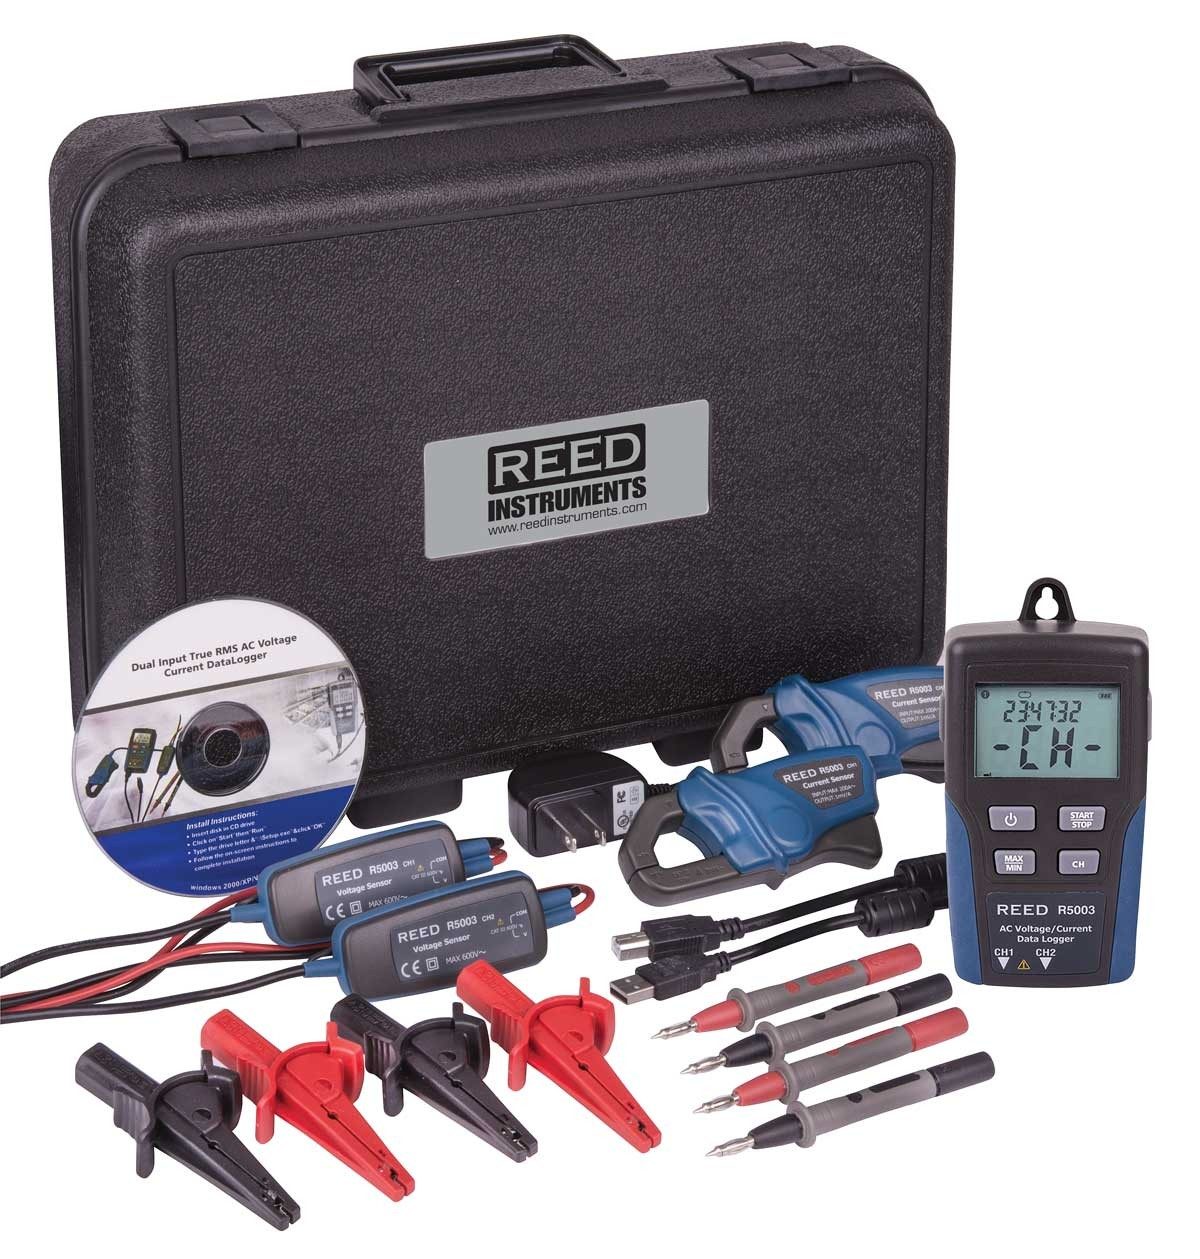 REED R5003 Dual Input True RMS AC Voltage/Current Datalogger-Included